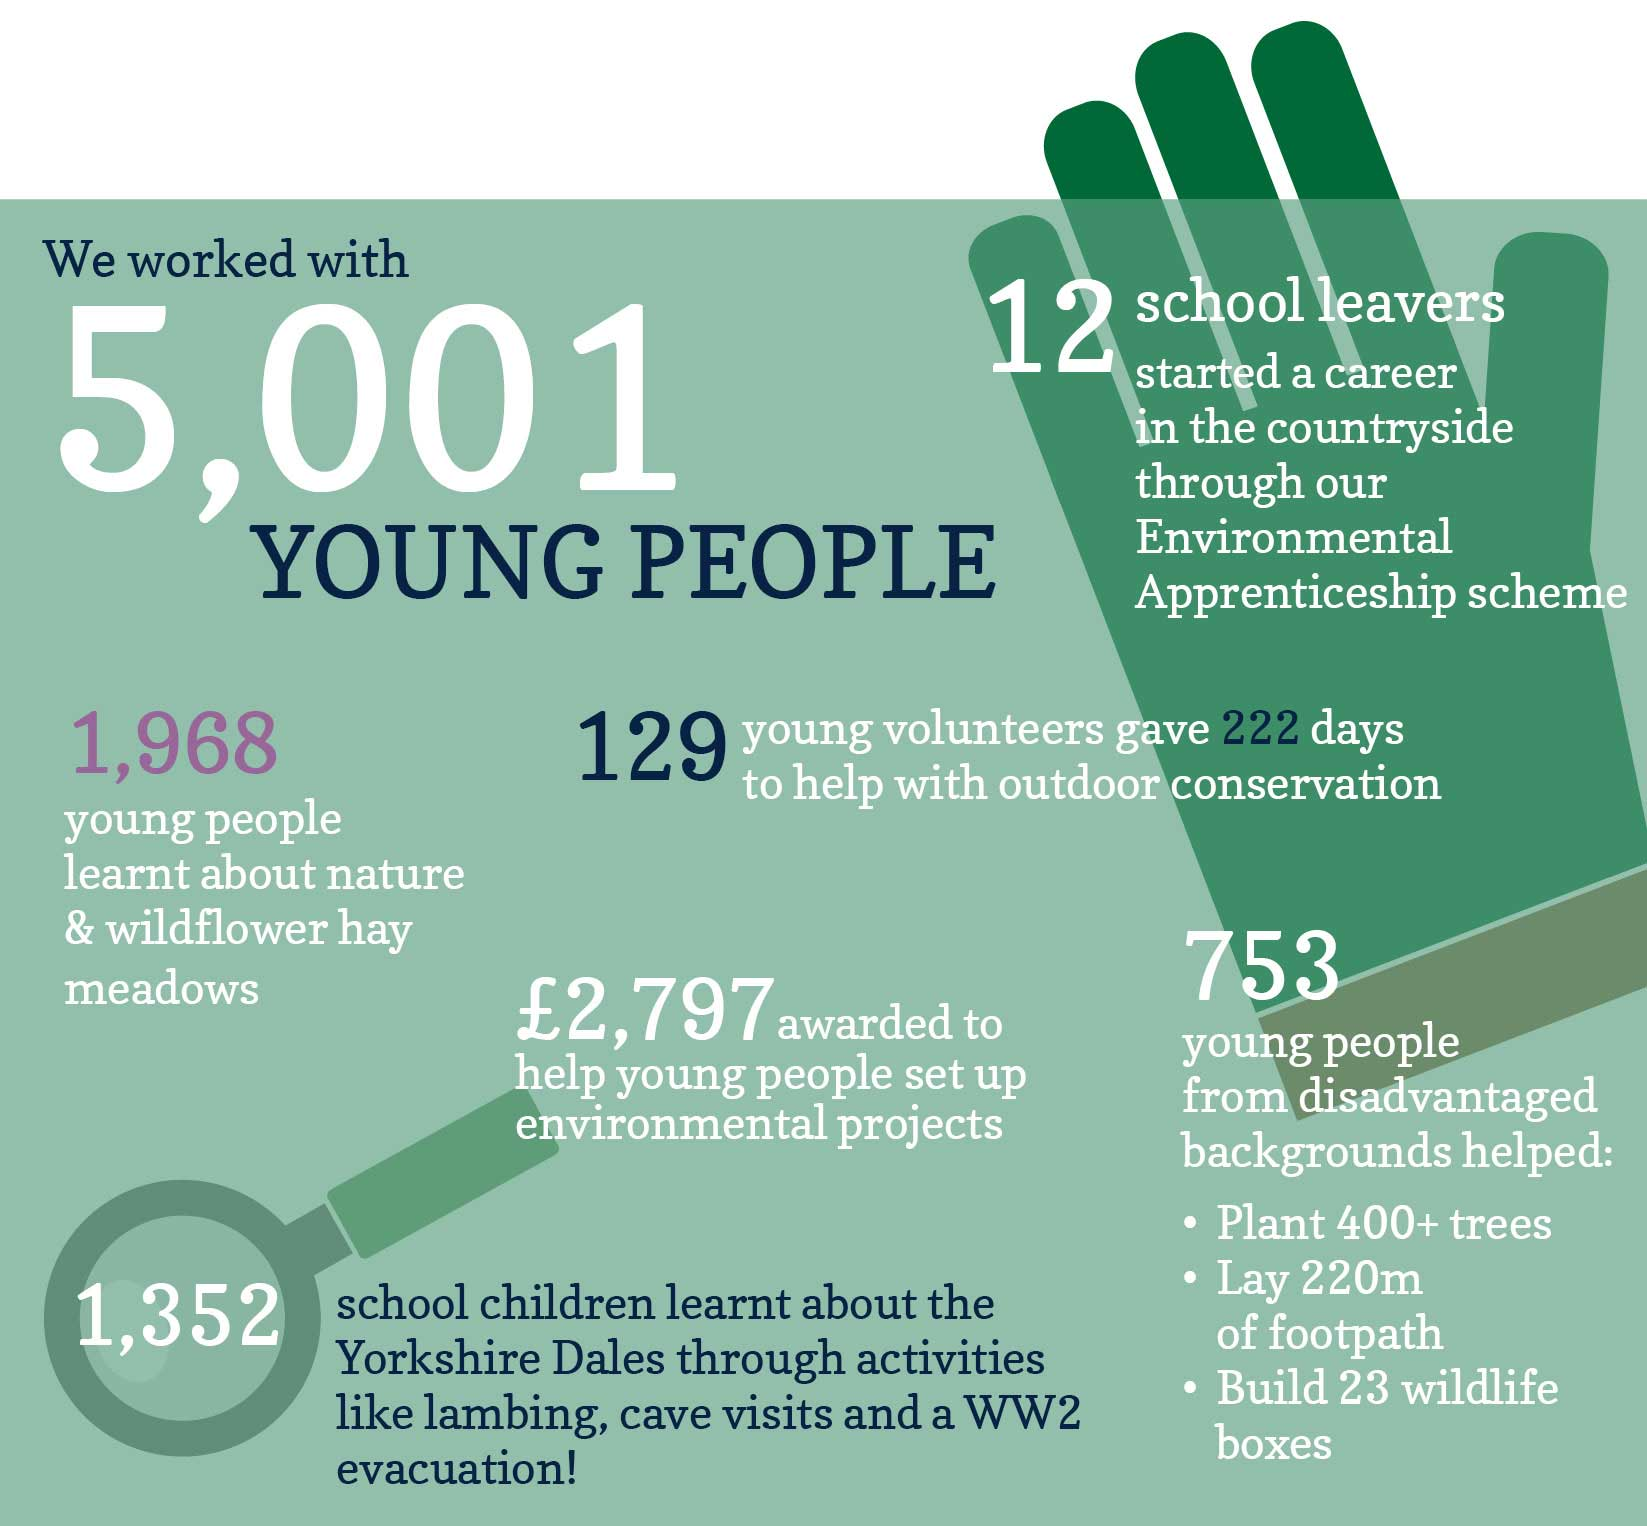 Our work with young people in the Yorkshire Dales